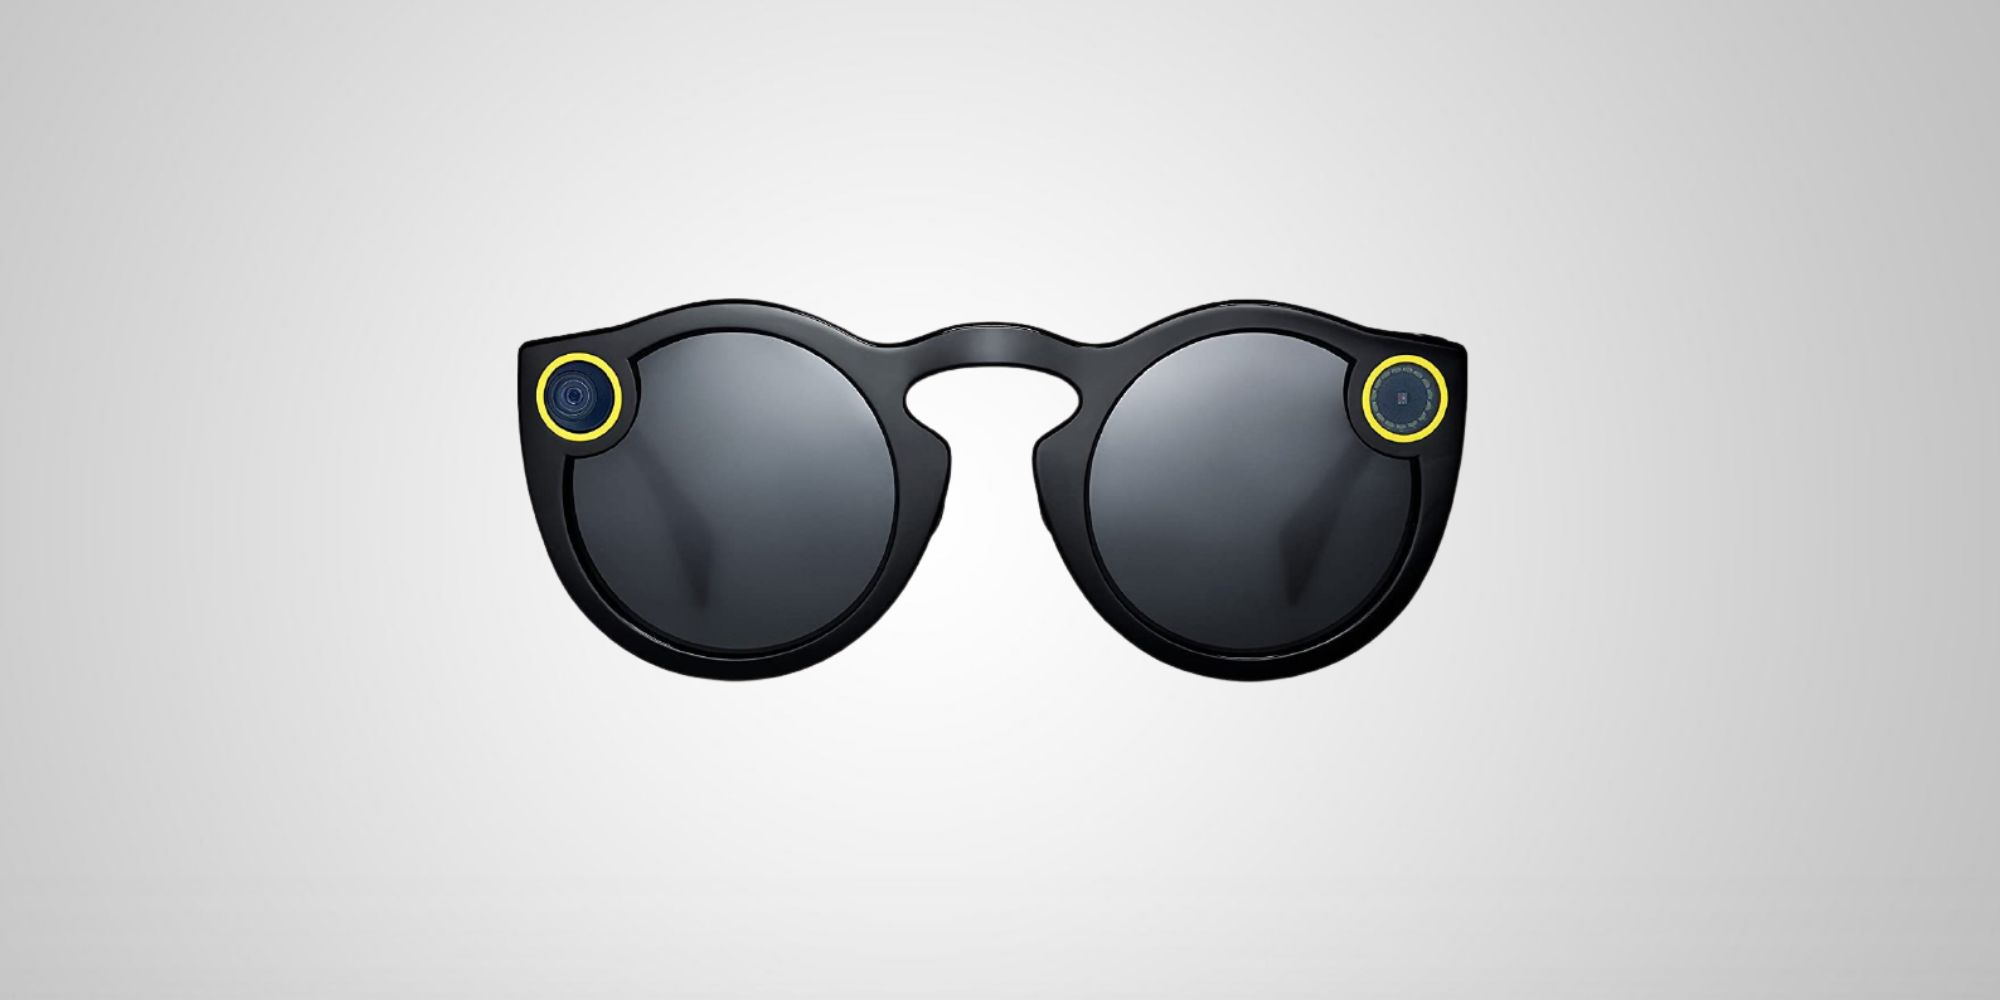 Spectacle Sunglasses Made for Snapchat